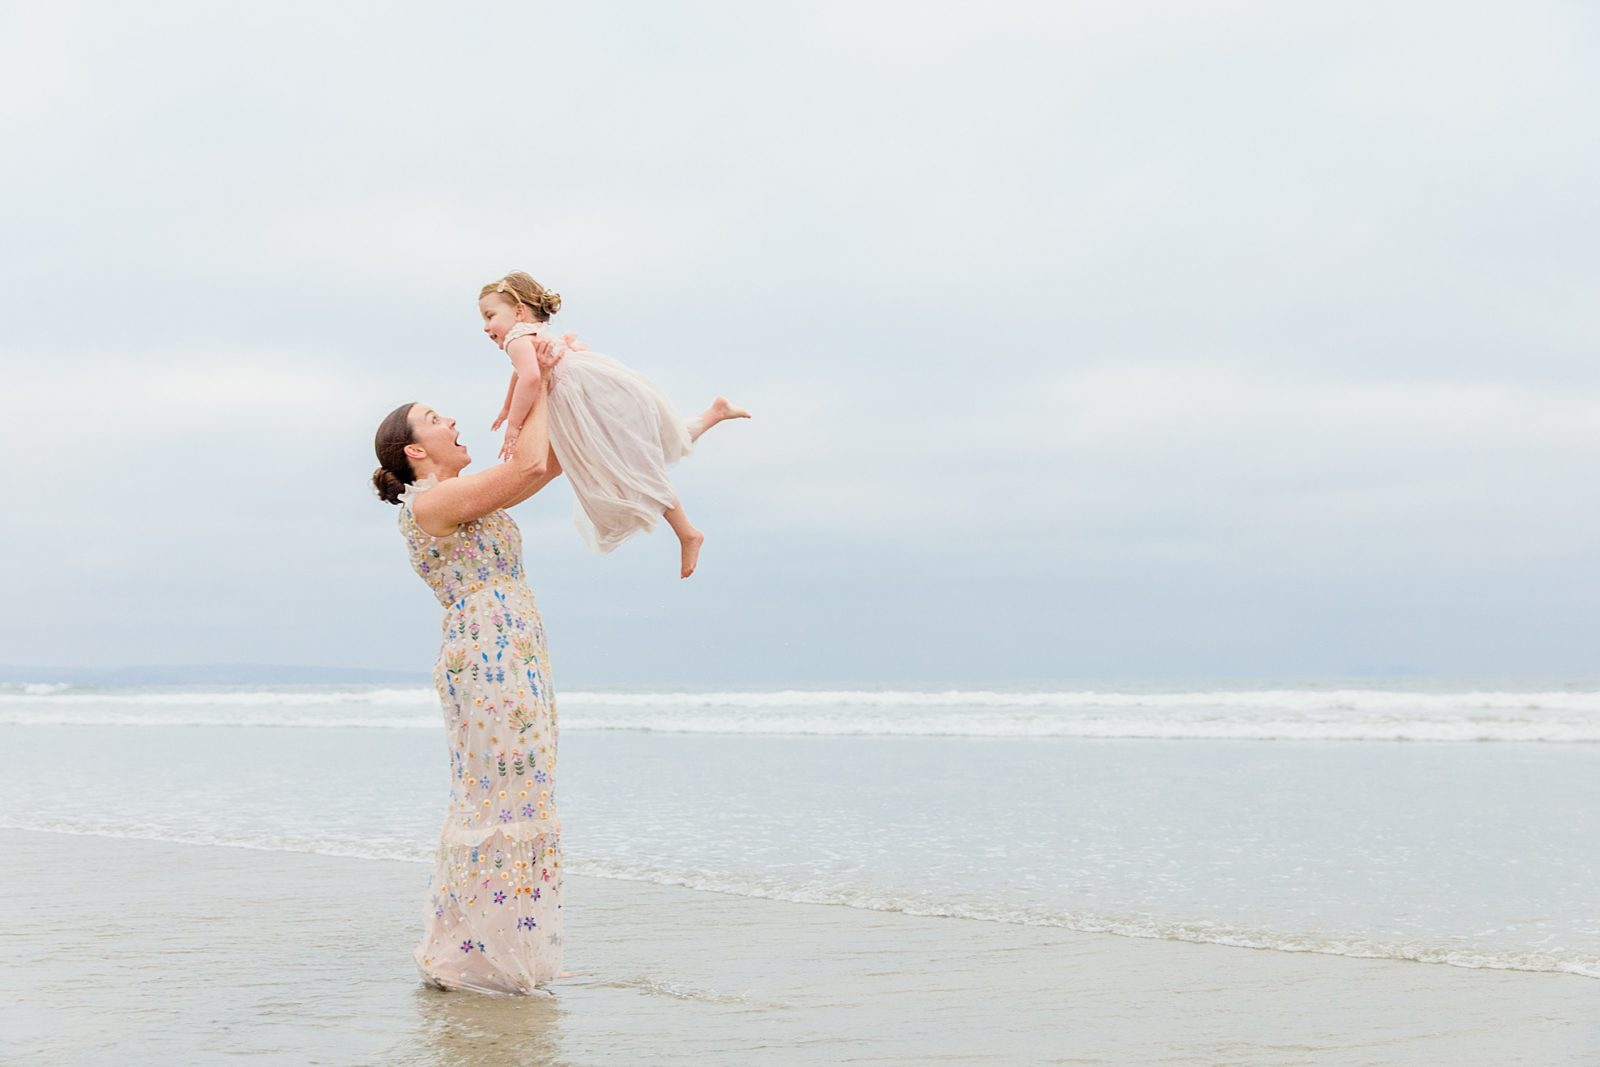 Motherhood | Family Photography San Diego